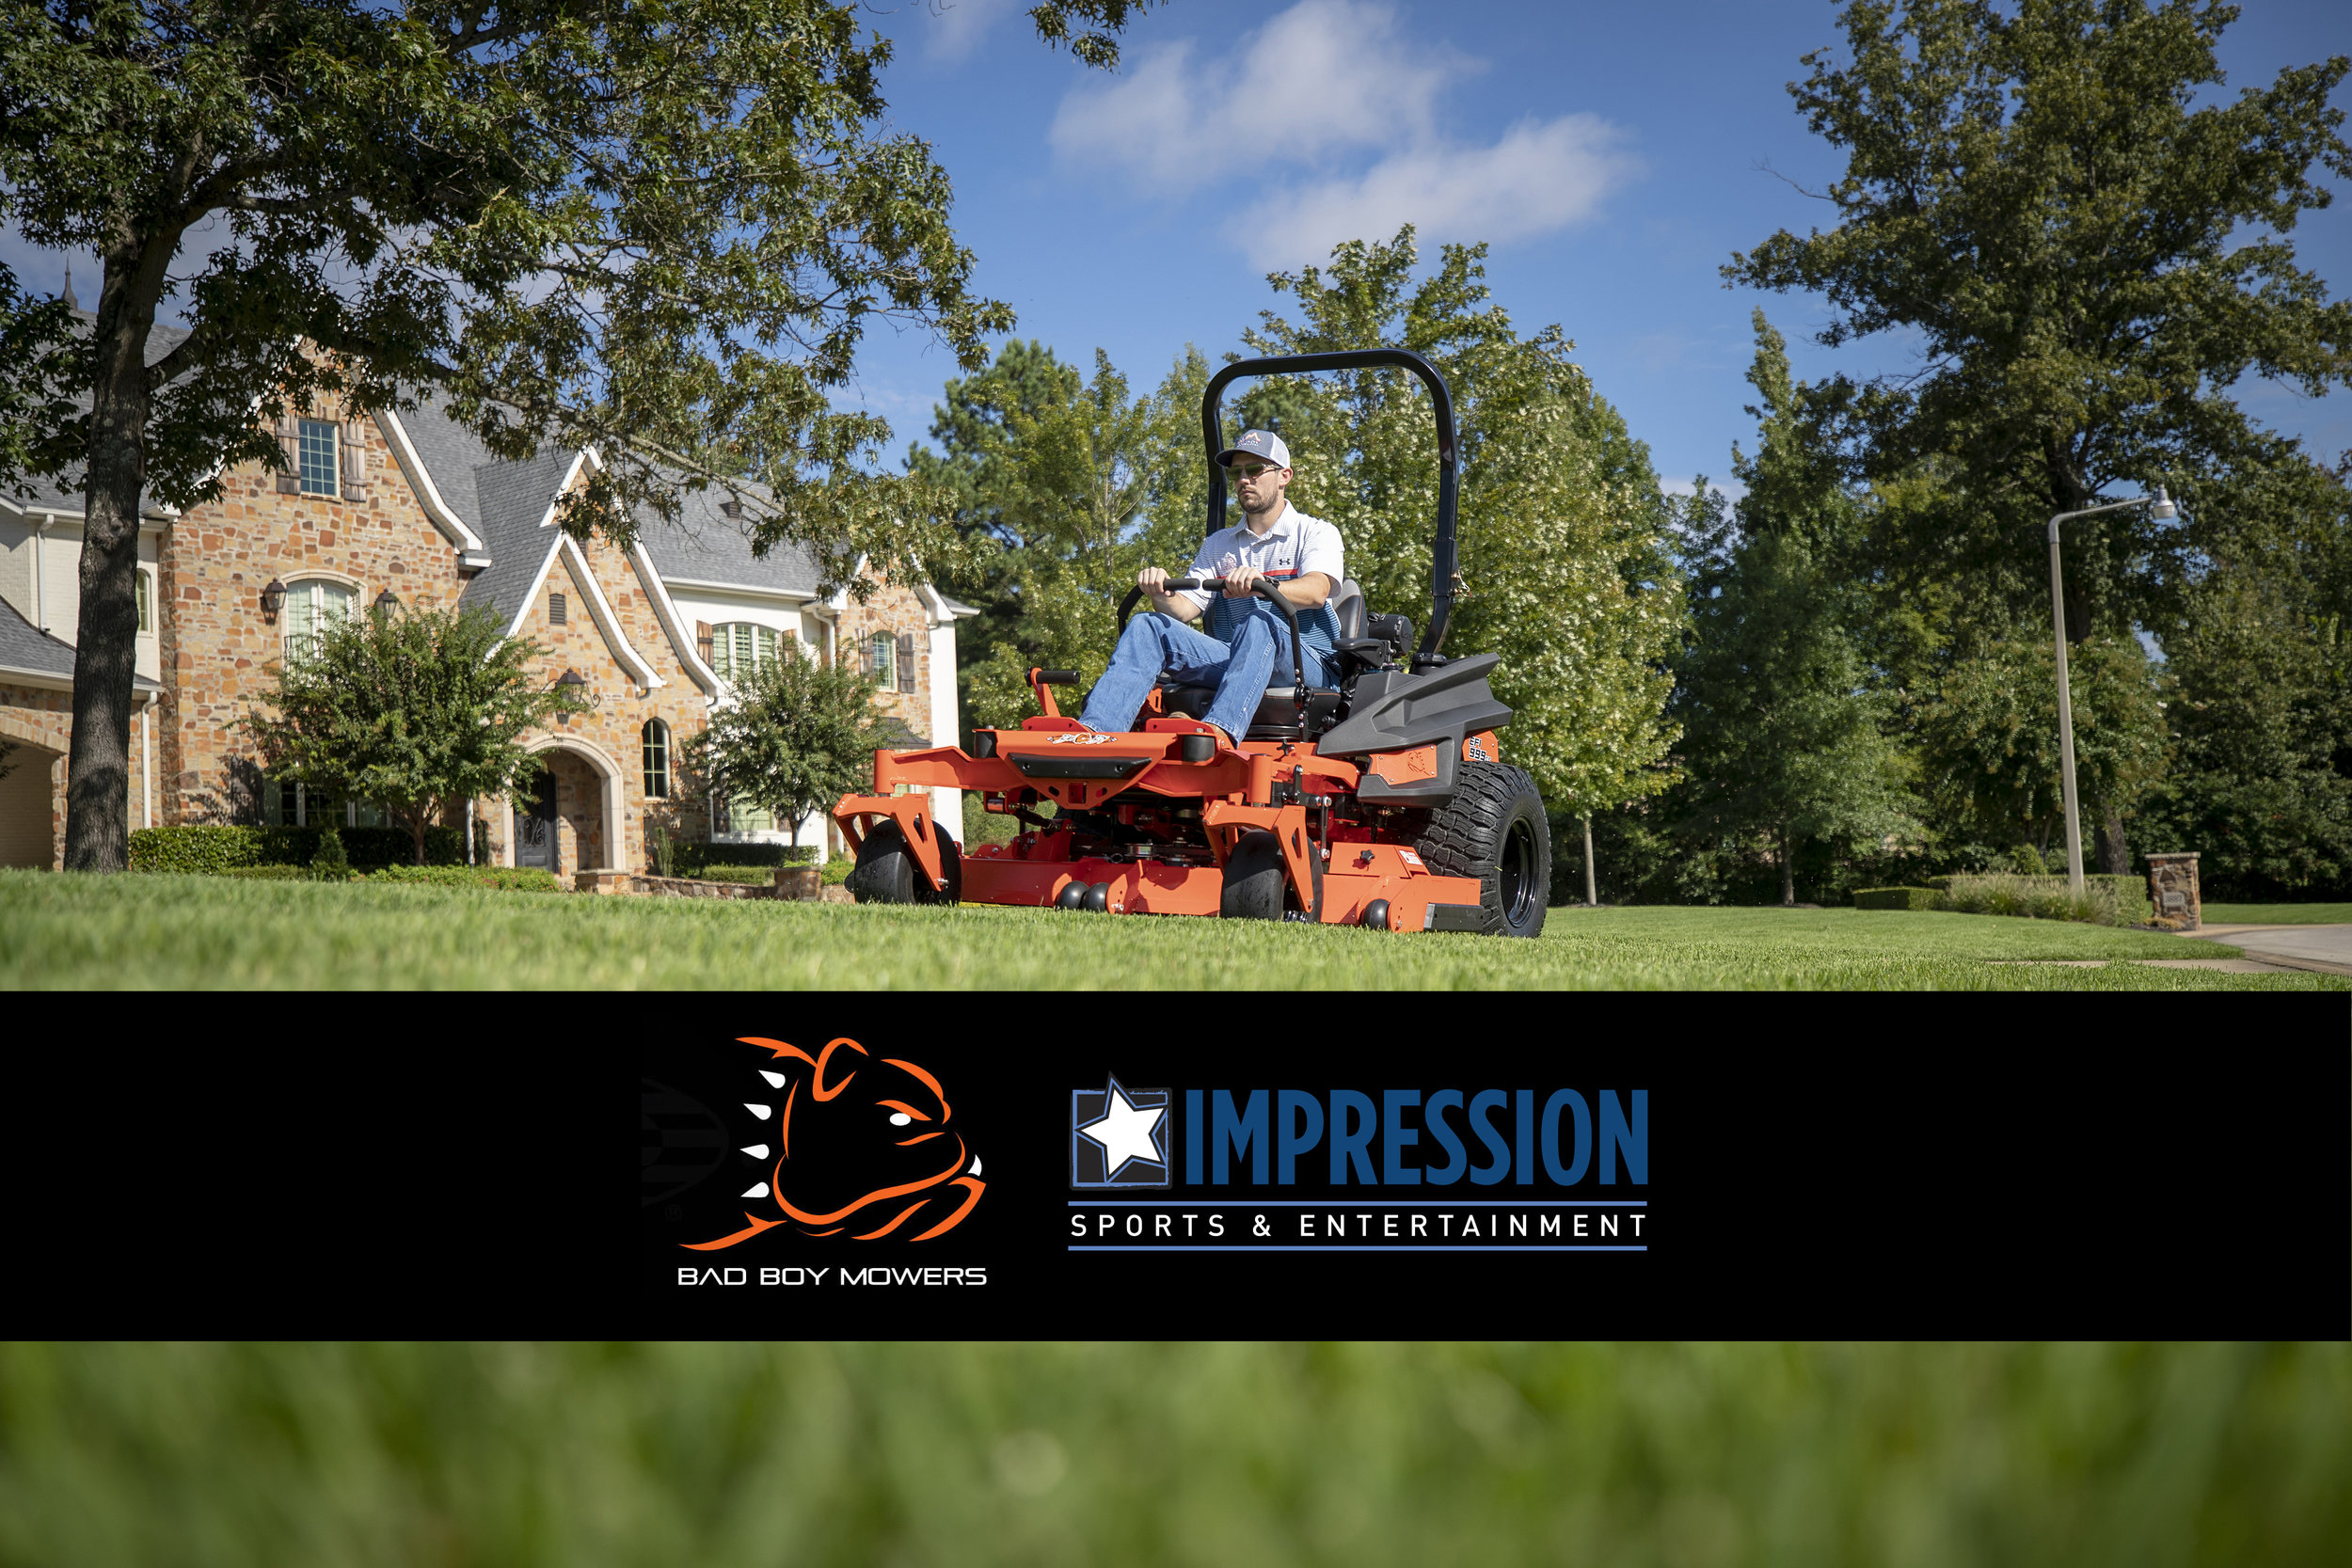 Bad Boy Mowers Taps Impression Sports & Entertainment as its Sponsorship Agency of Record